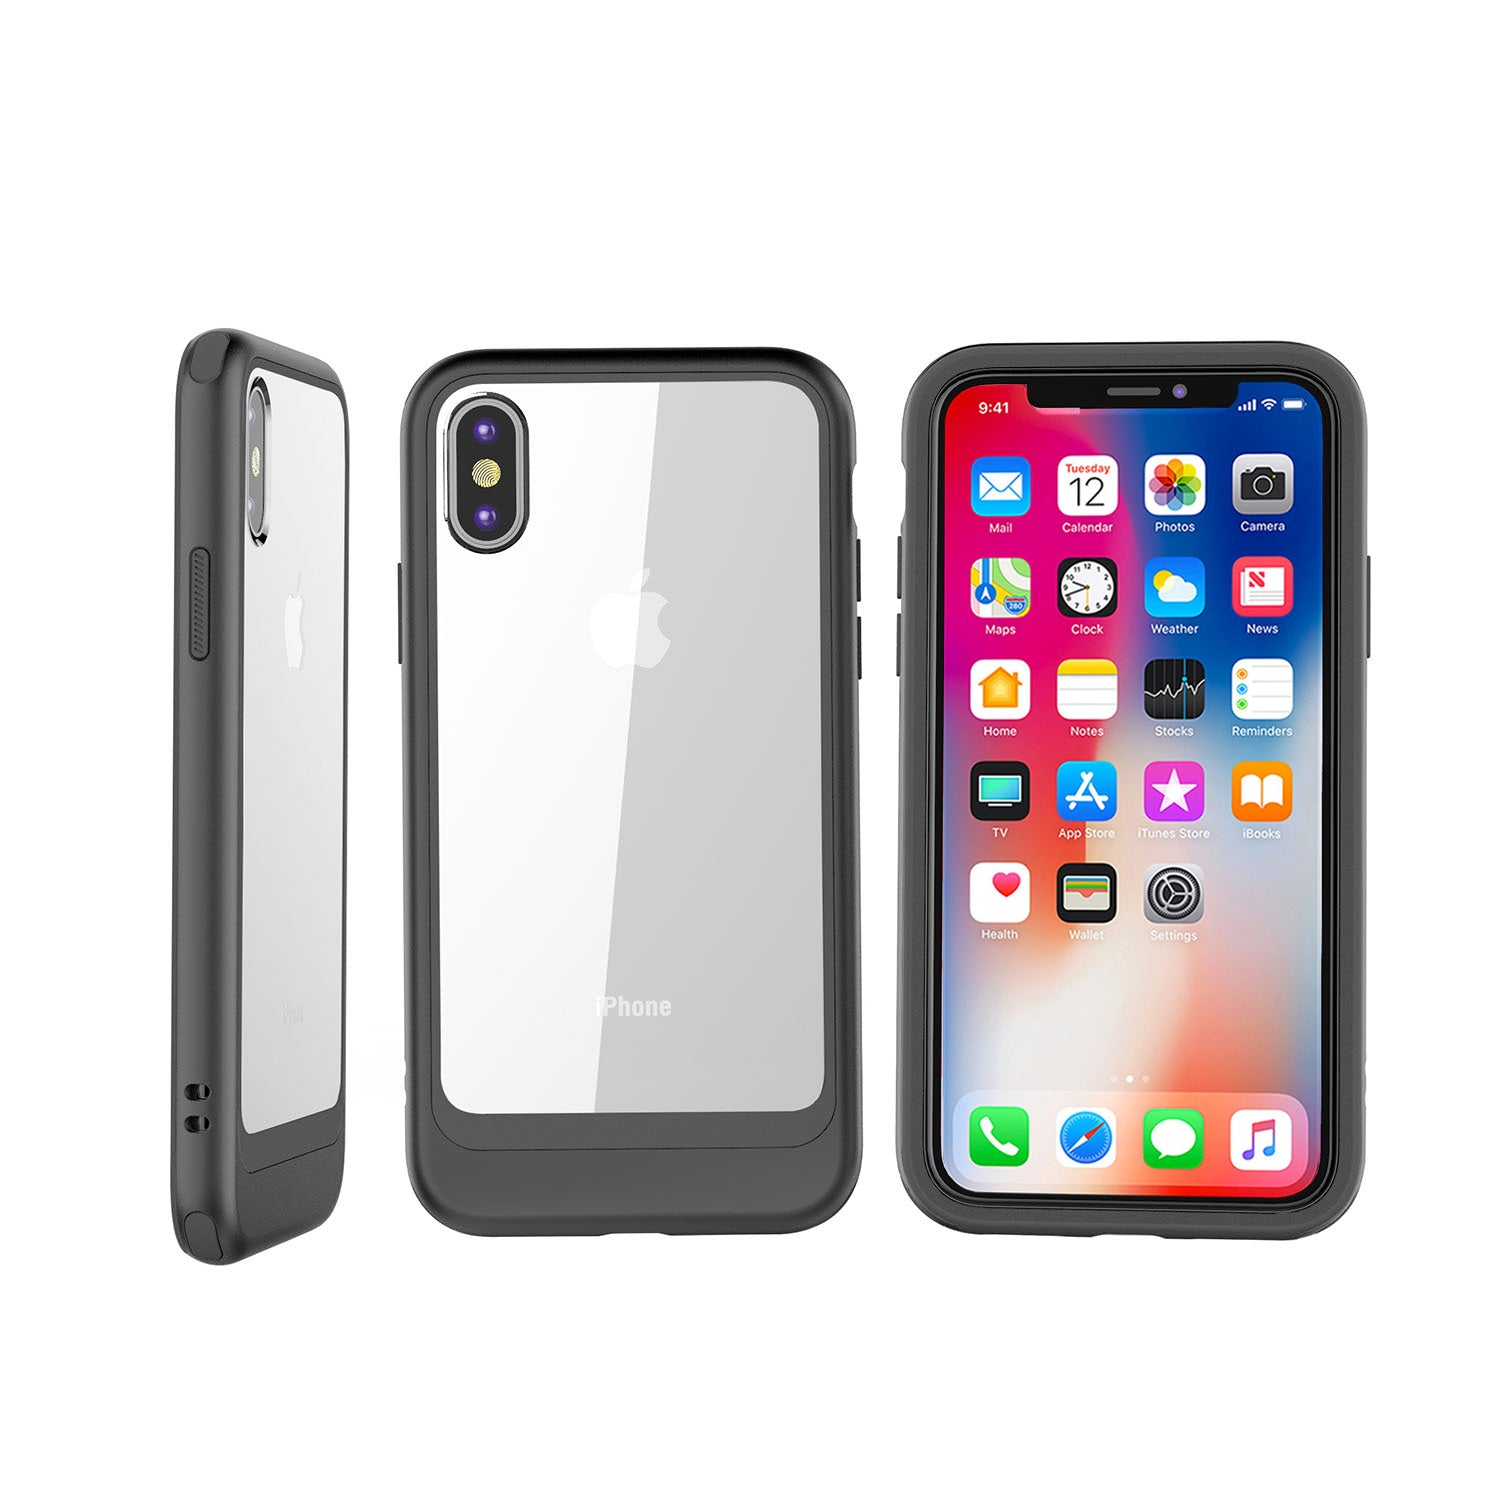 Super Popular 4615d 58bb0 Fashion Iphone Xs X Phone Case 1 Wp 7 Plus Cafele Tpu Soft Silicone Casing Cases Cover Outlet Store 79a68 F77a1 Transparent Pc Back With Colourful Bumper Slim 58